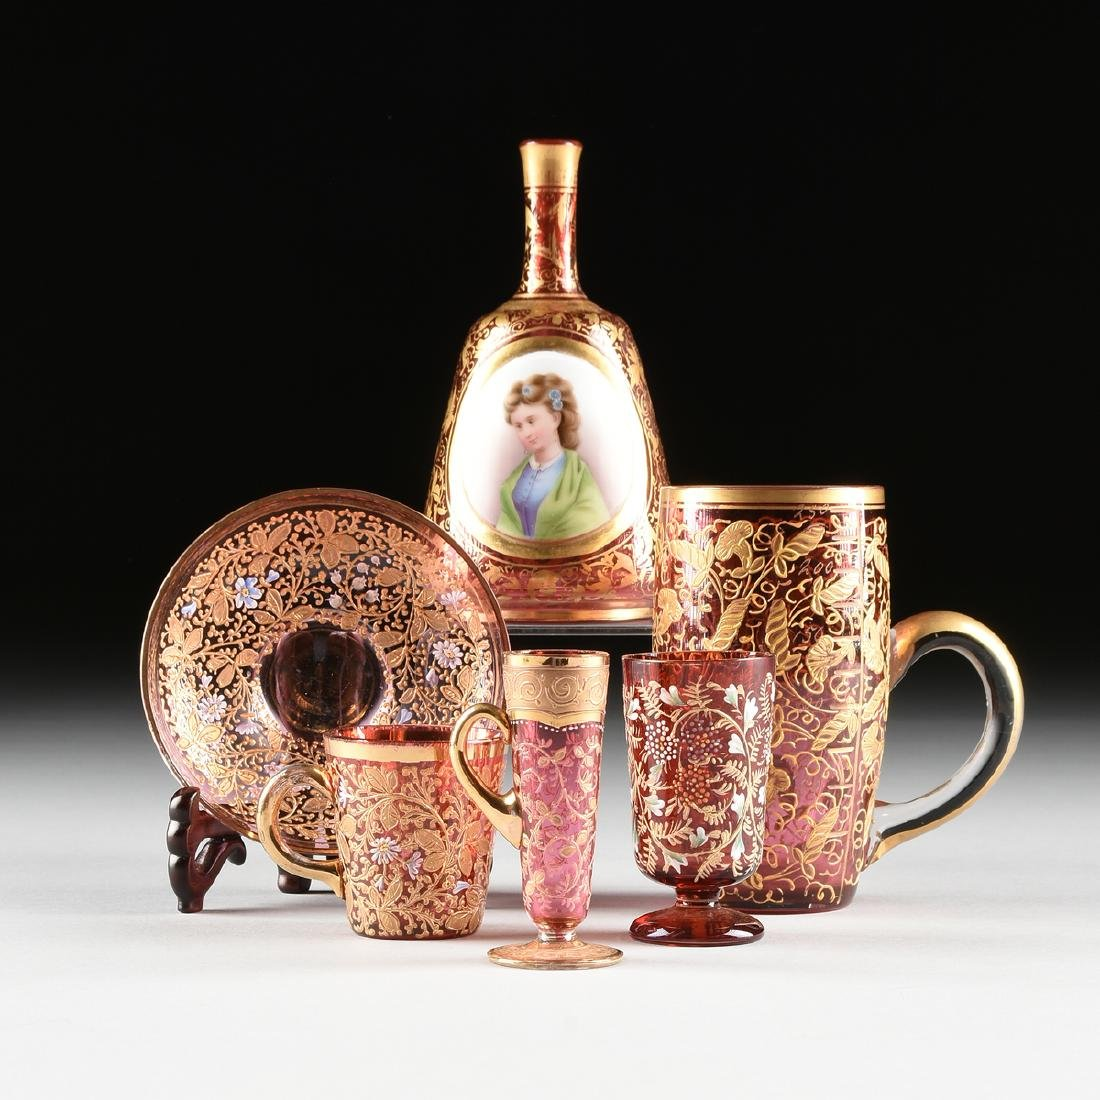 A GROUP OF SIX LUDWIG MOSER & SOHNE GILT DECORATED